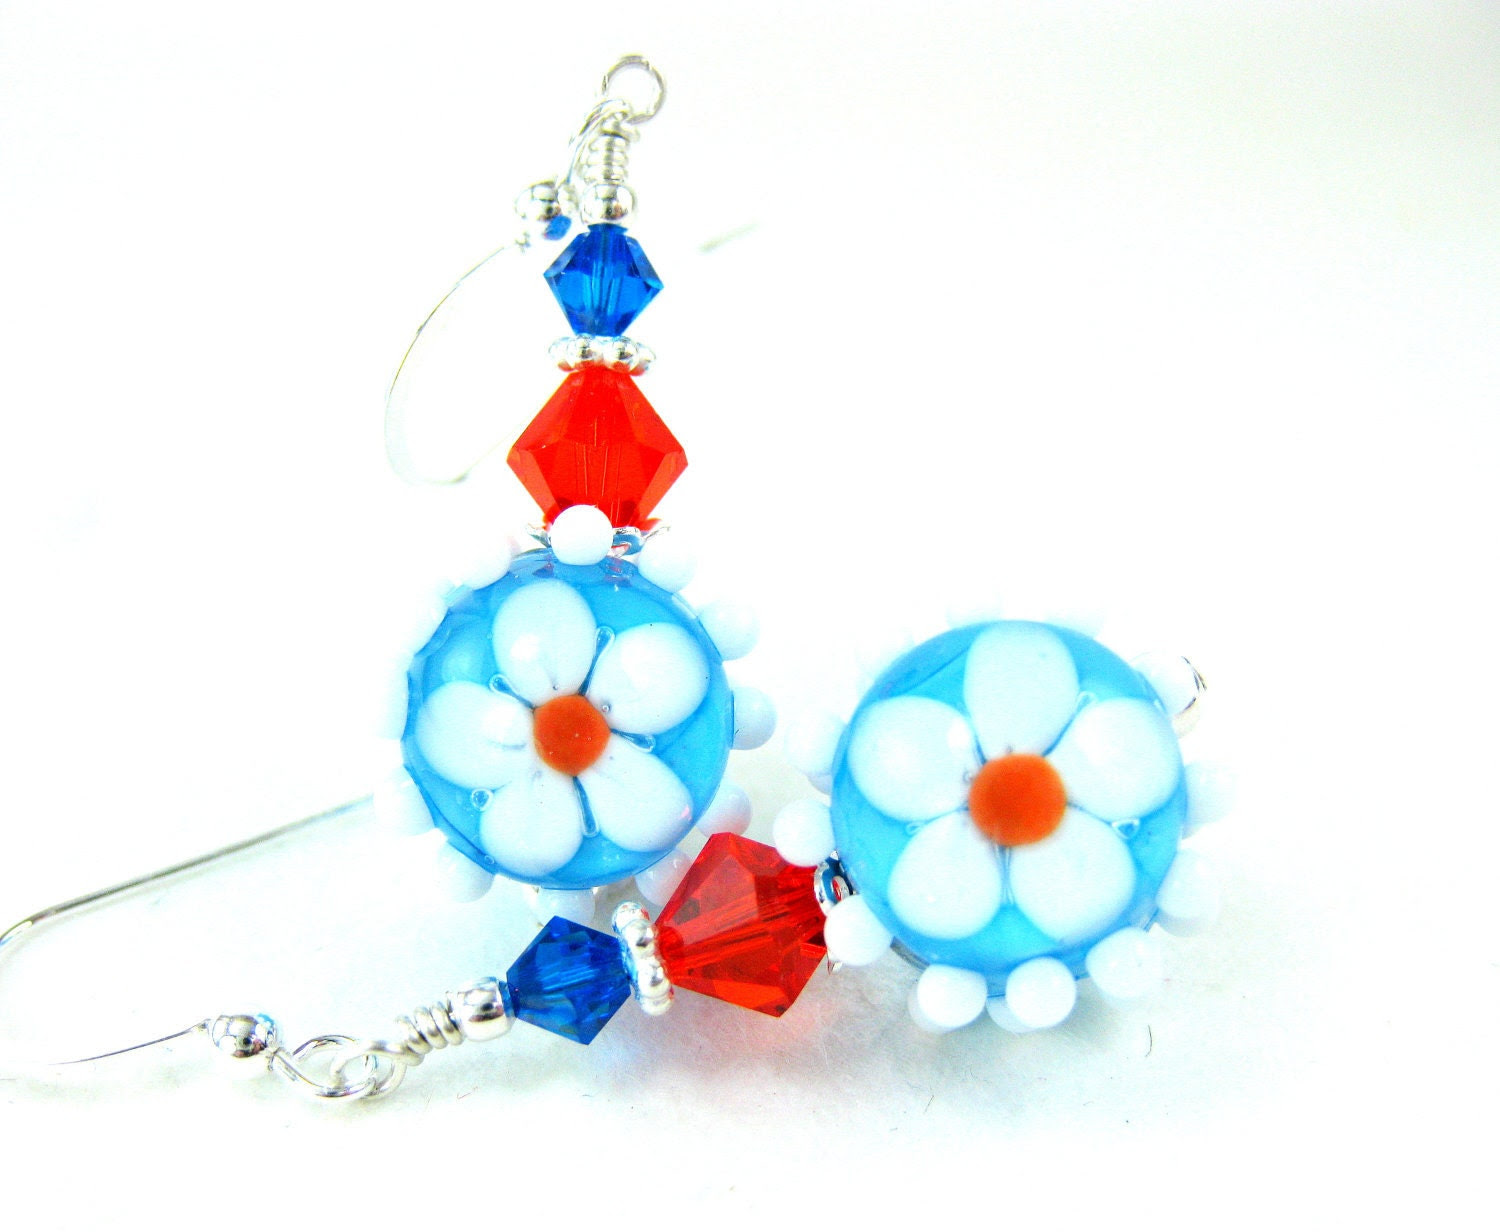 Blue Orange Daisy Earrings, Turquoise Blue Orange Beadwork Earrings, Floral Lampwork Earrings, Dangle Earrings, Drop Earrings - Miss Daisy - GlassRiverJewelry